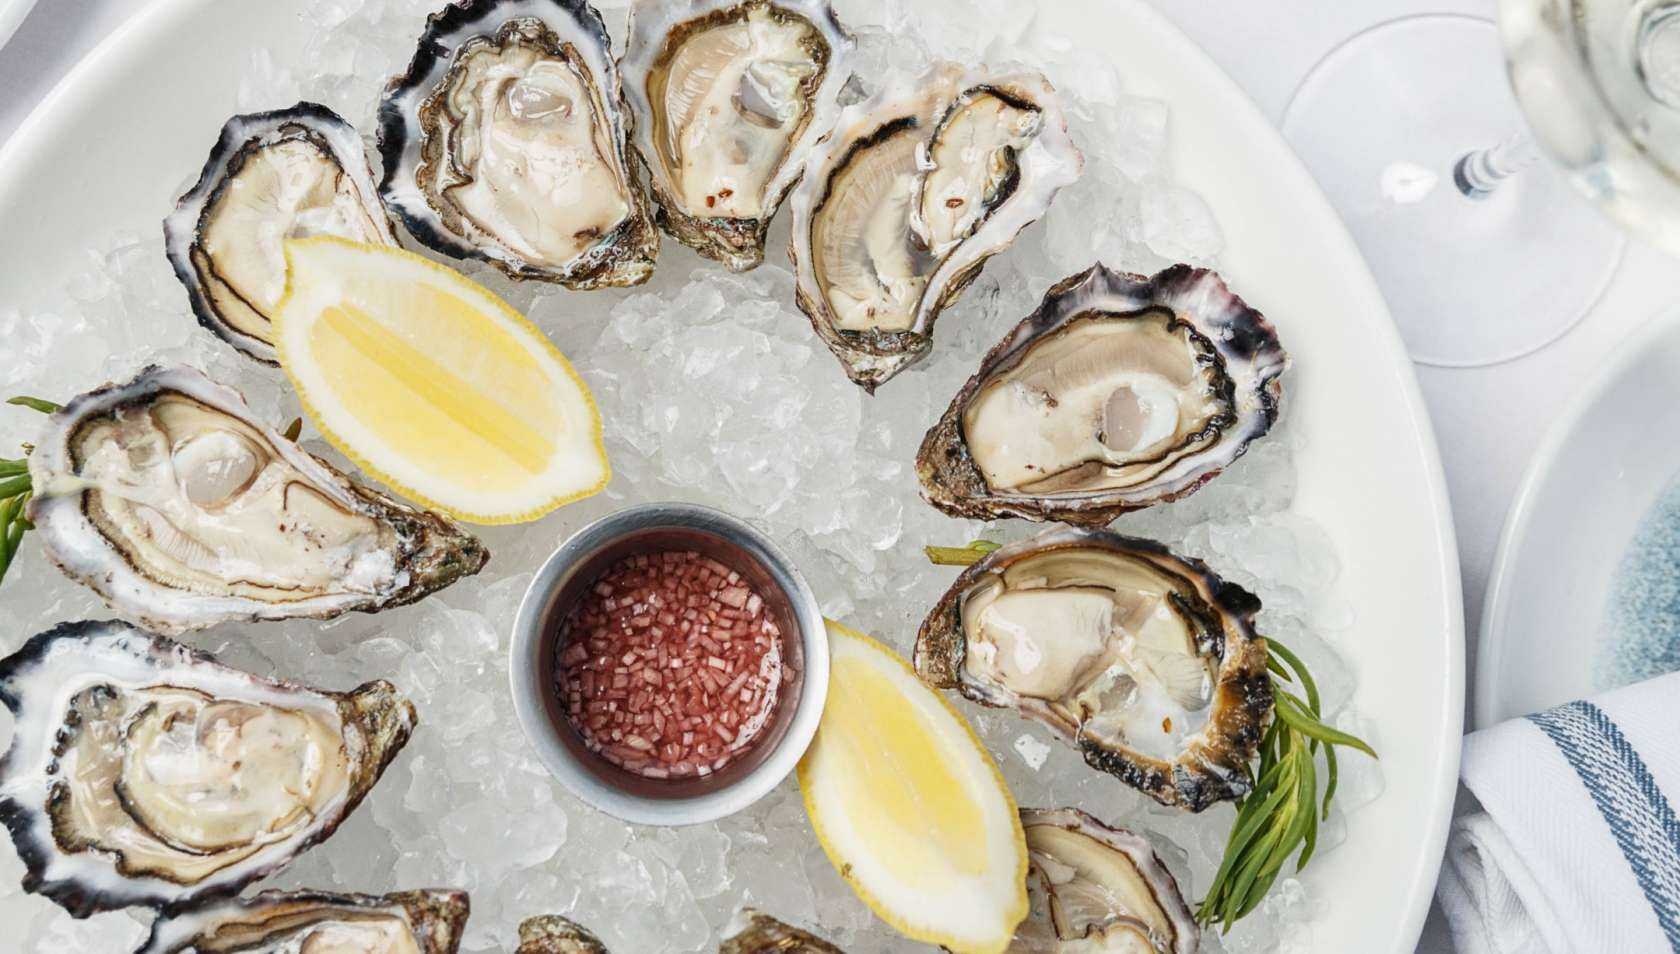 Oysters and Moet - HFSR